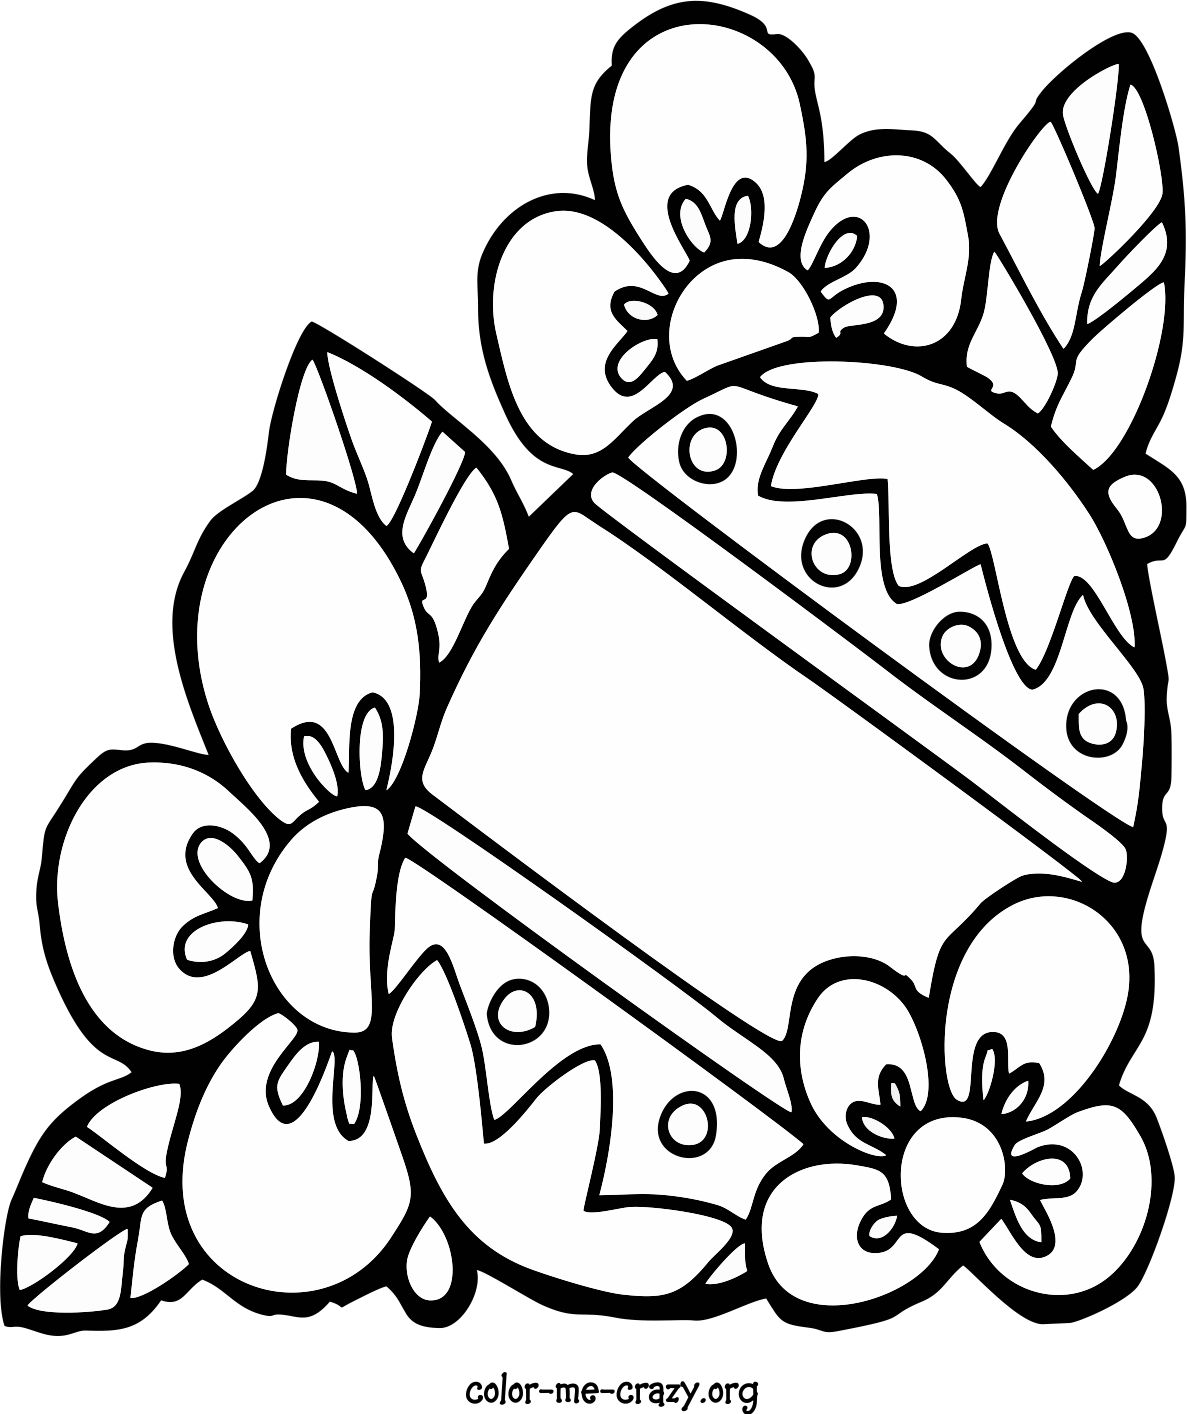 easter coloring pages printable colormecrazyorg easter coloring pages pages printable coloring easter